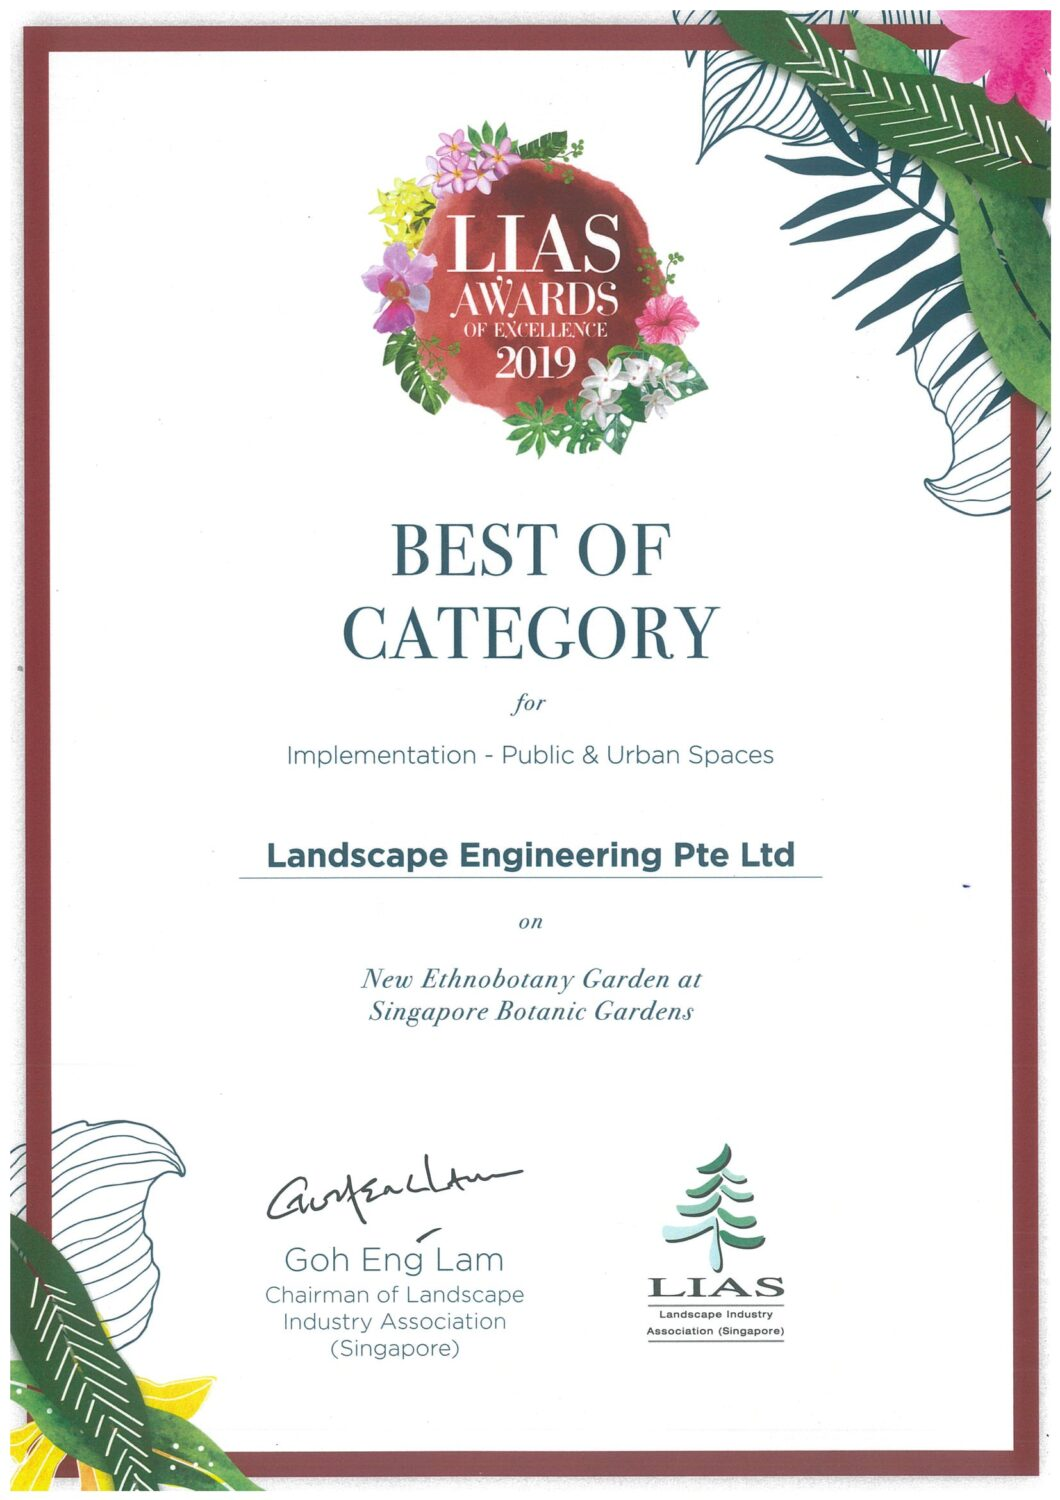 LIAS AWARDS OF EXCELLENCE 2019 - ETHNOBOTANY